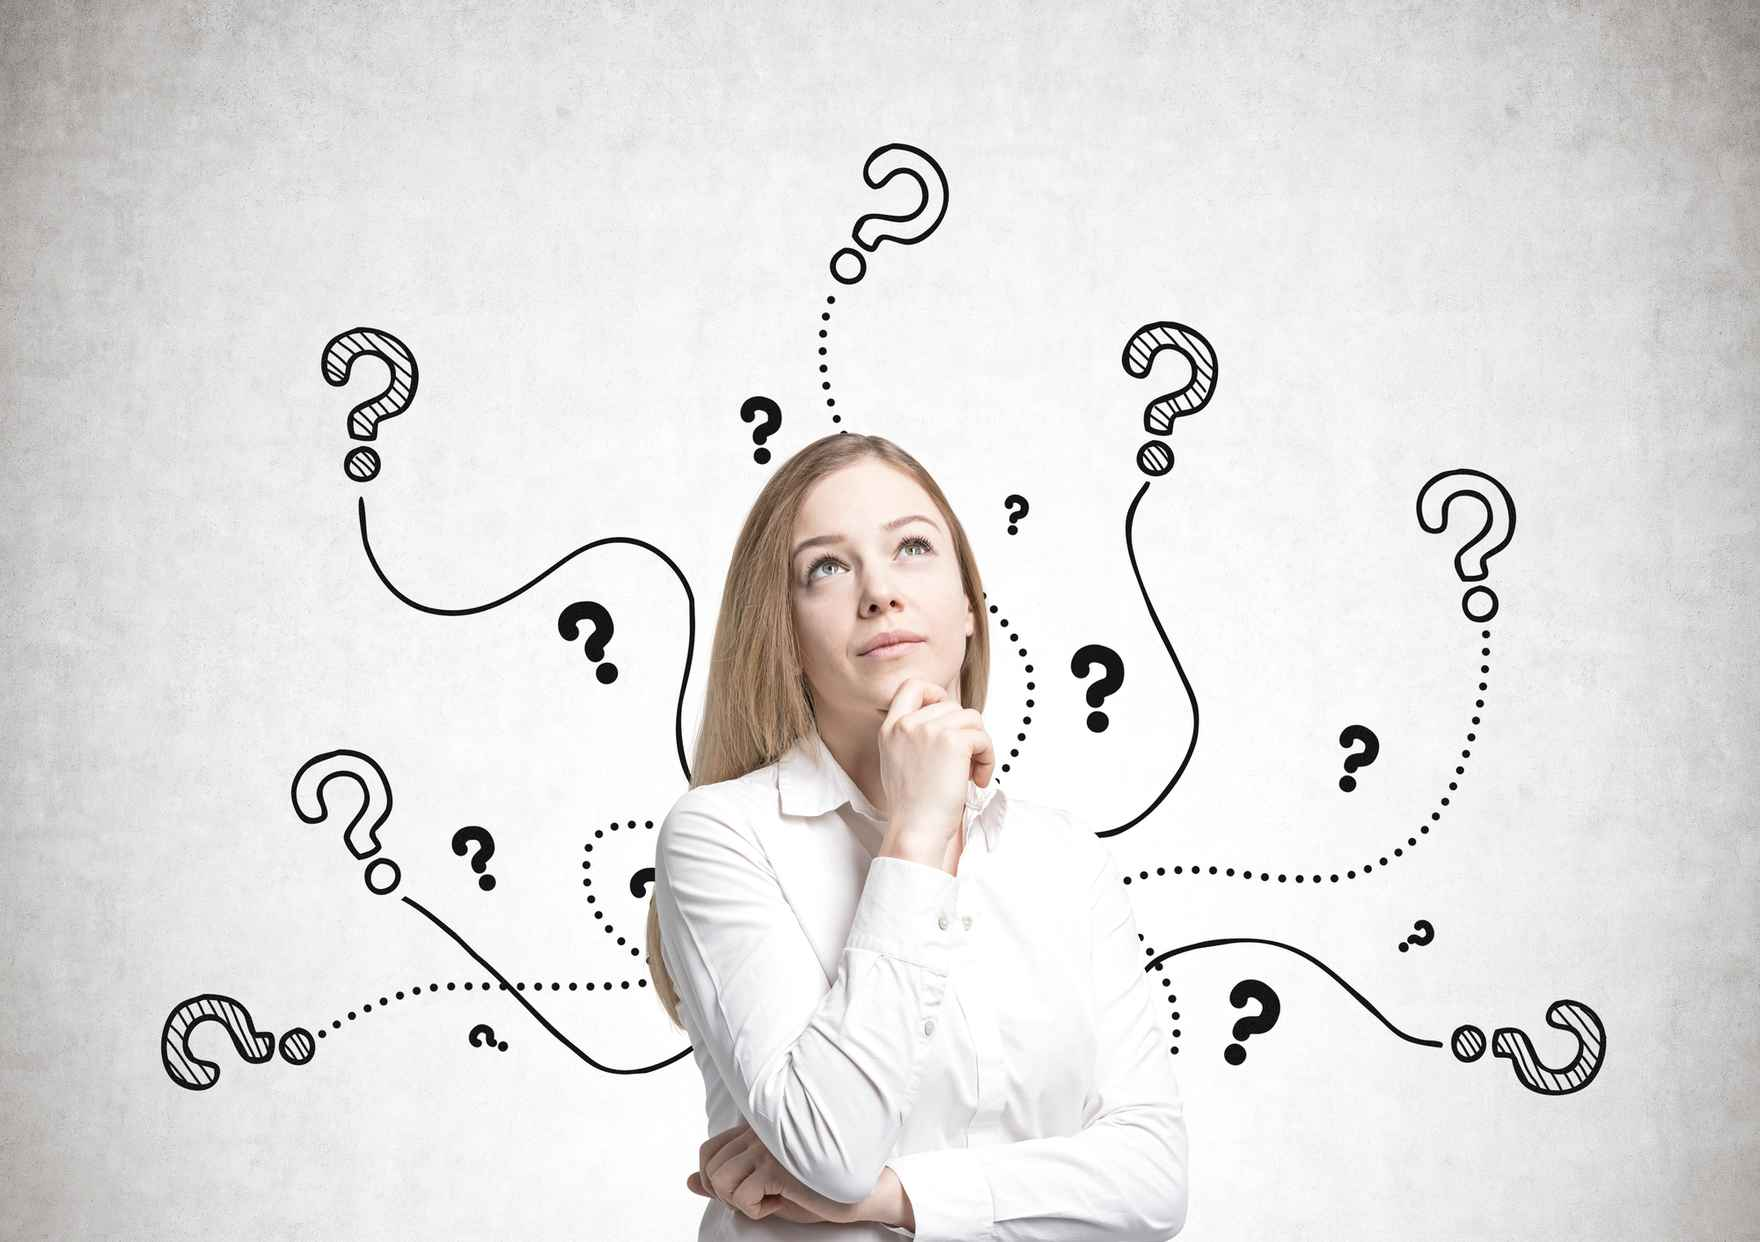 investing dividend questions